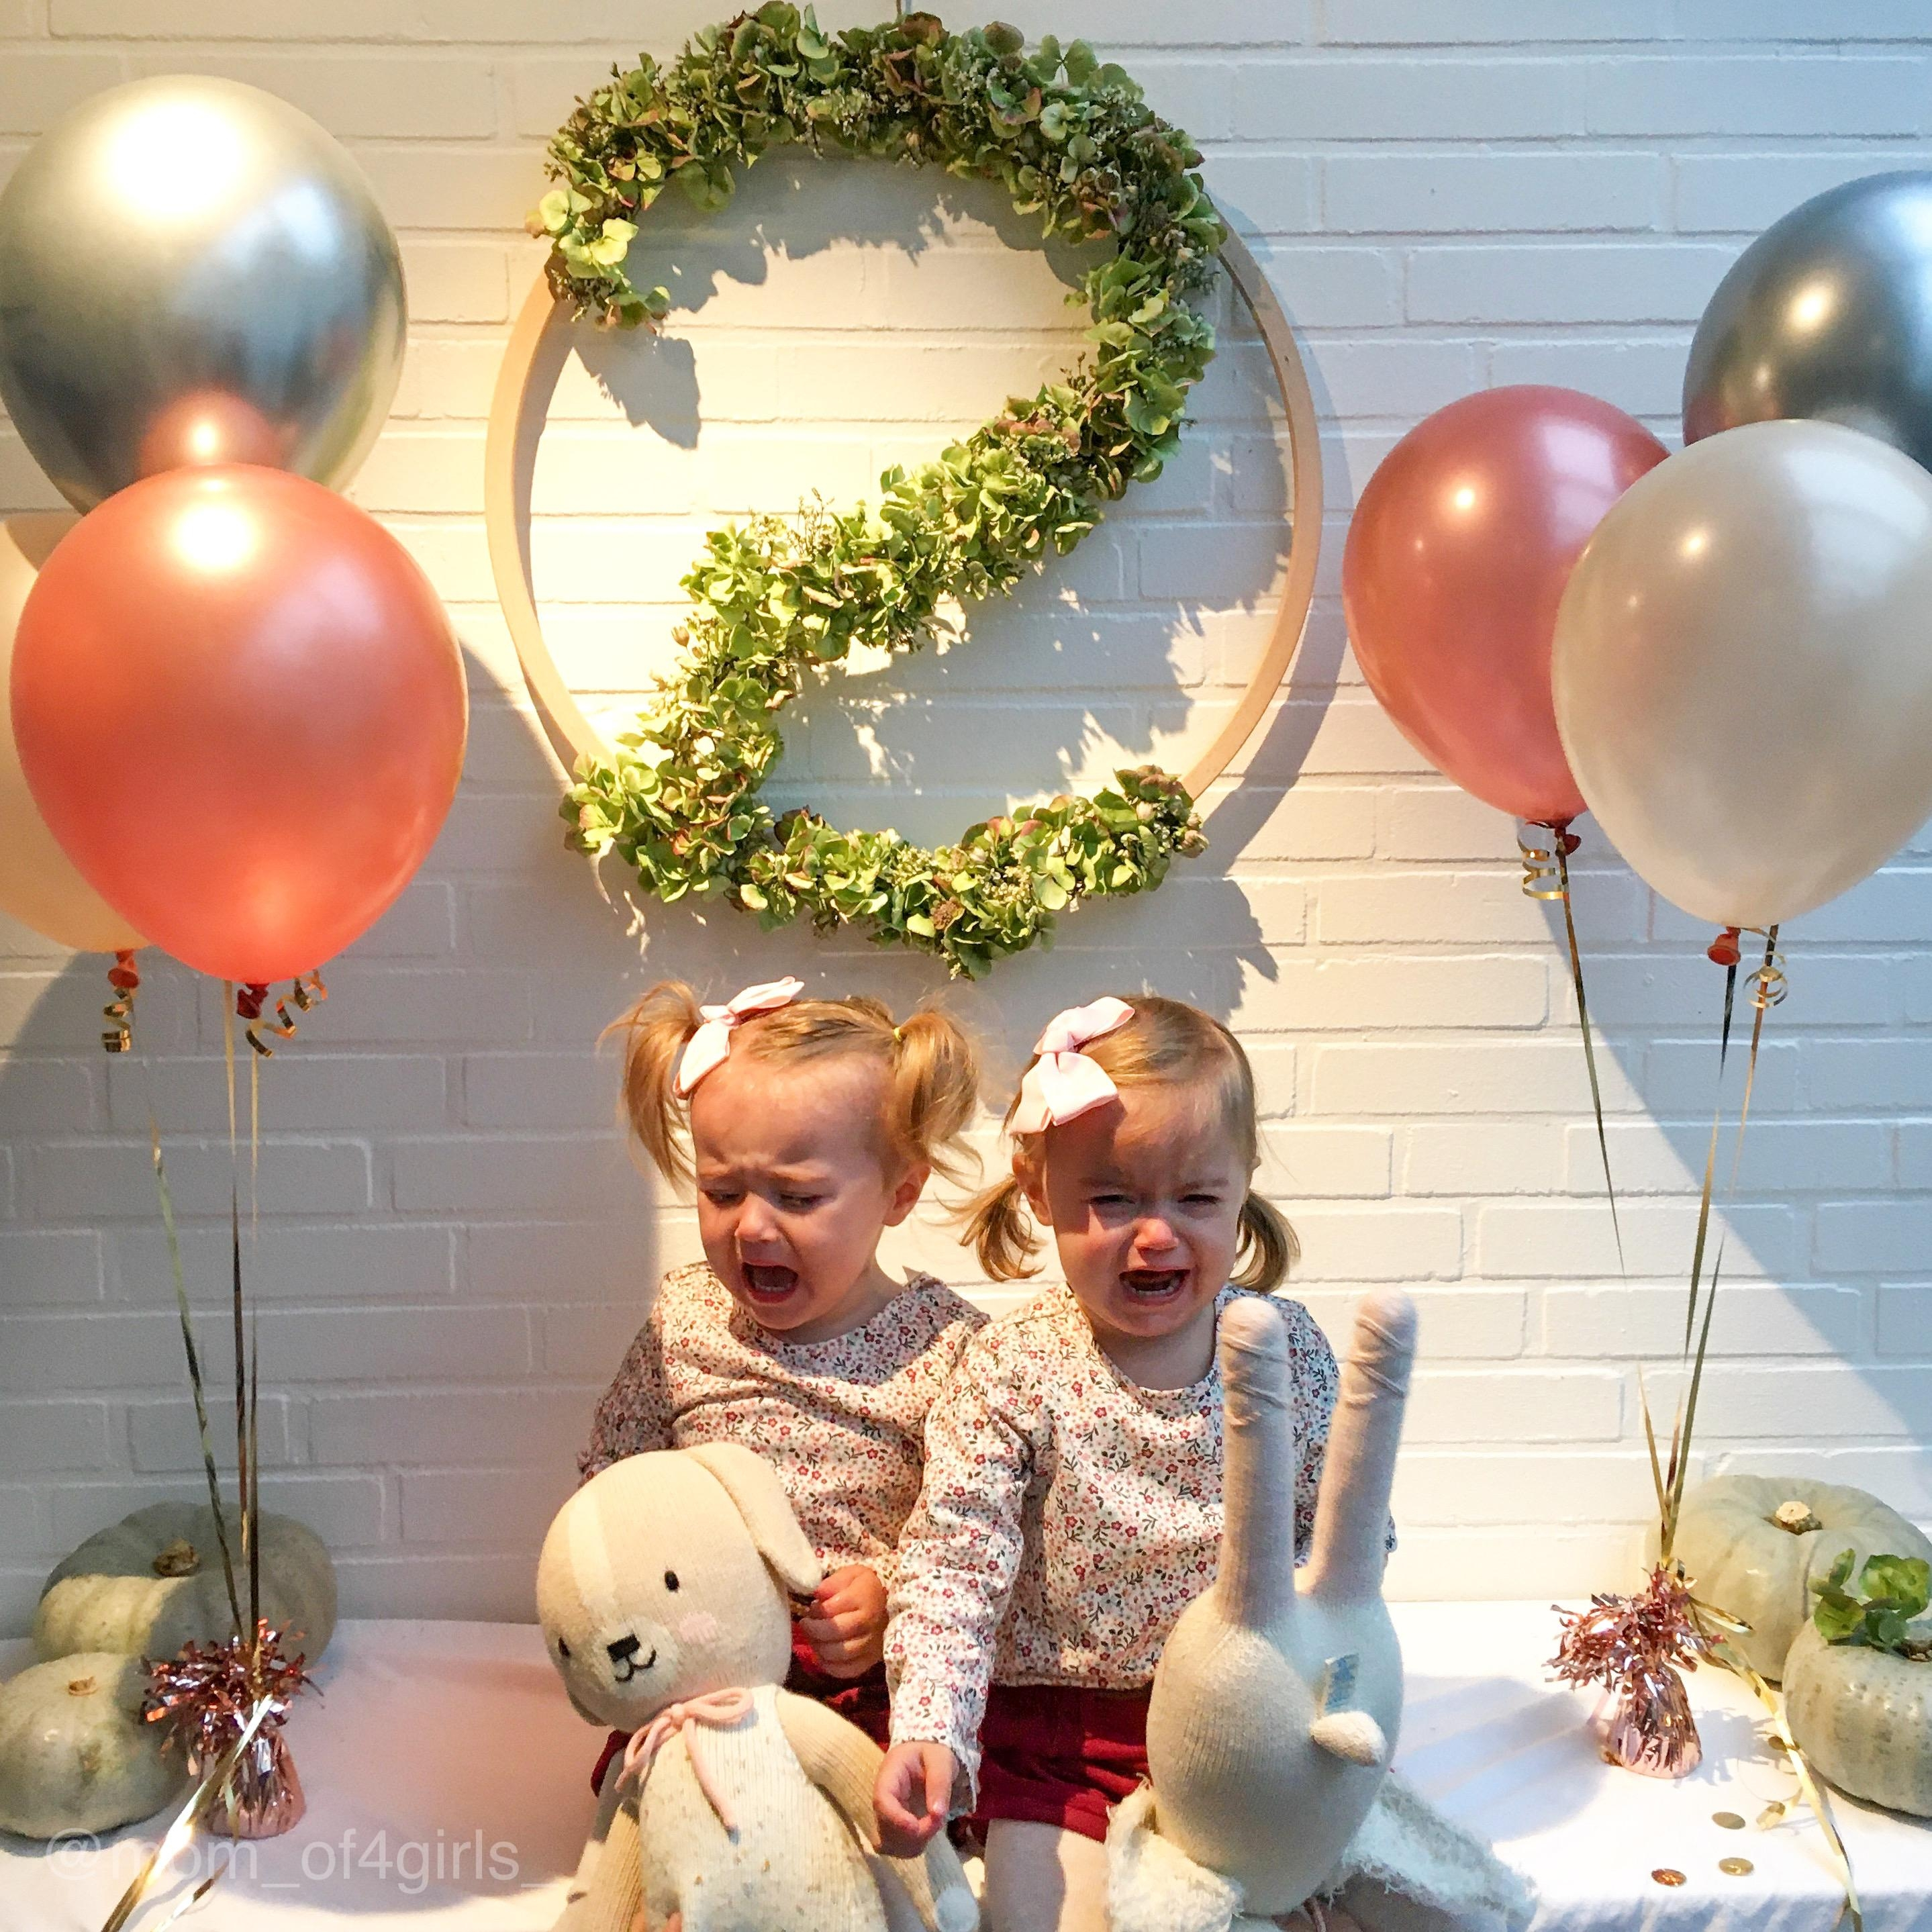 What do the twins think? #zwillinge #twinsbirthday #birthday #twins #geburtstag #geburtstagsfeier #geburtstagskind